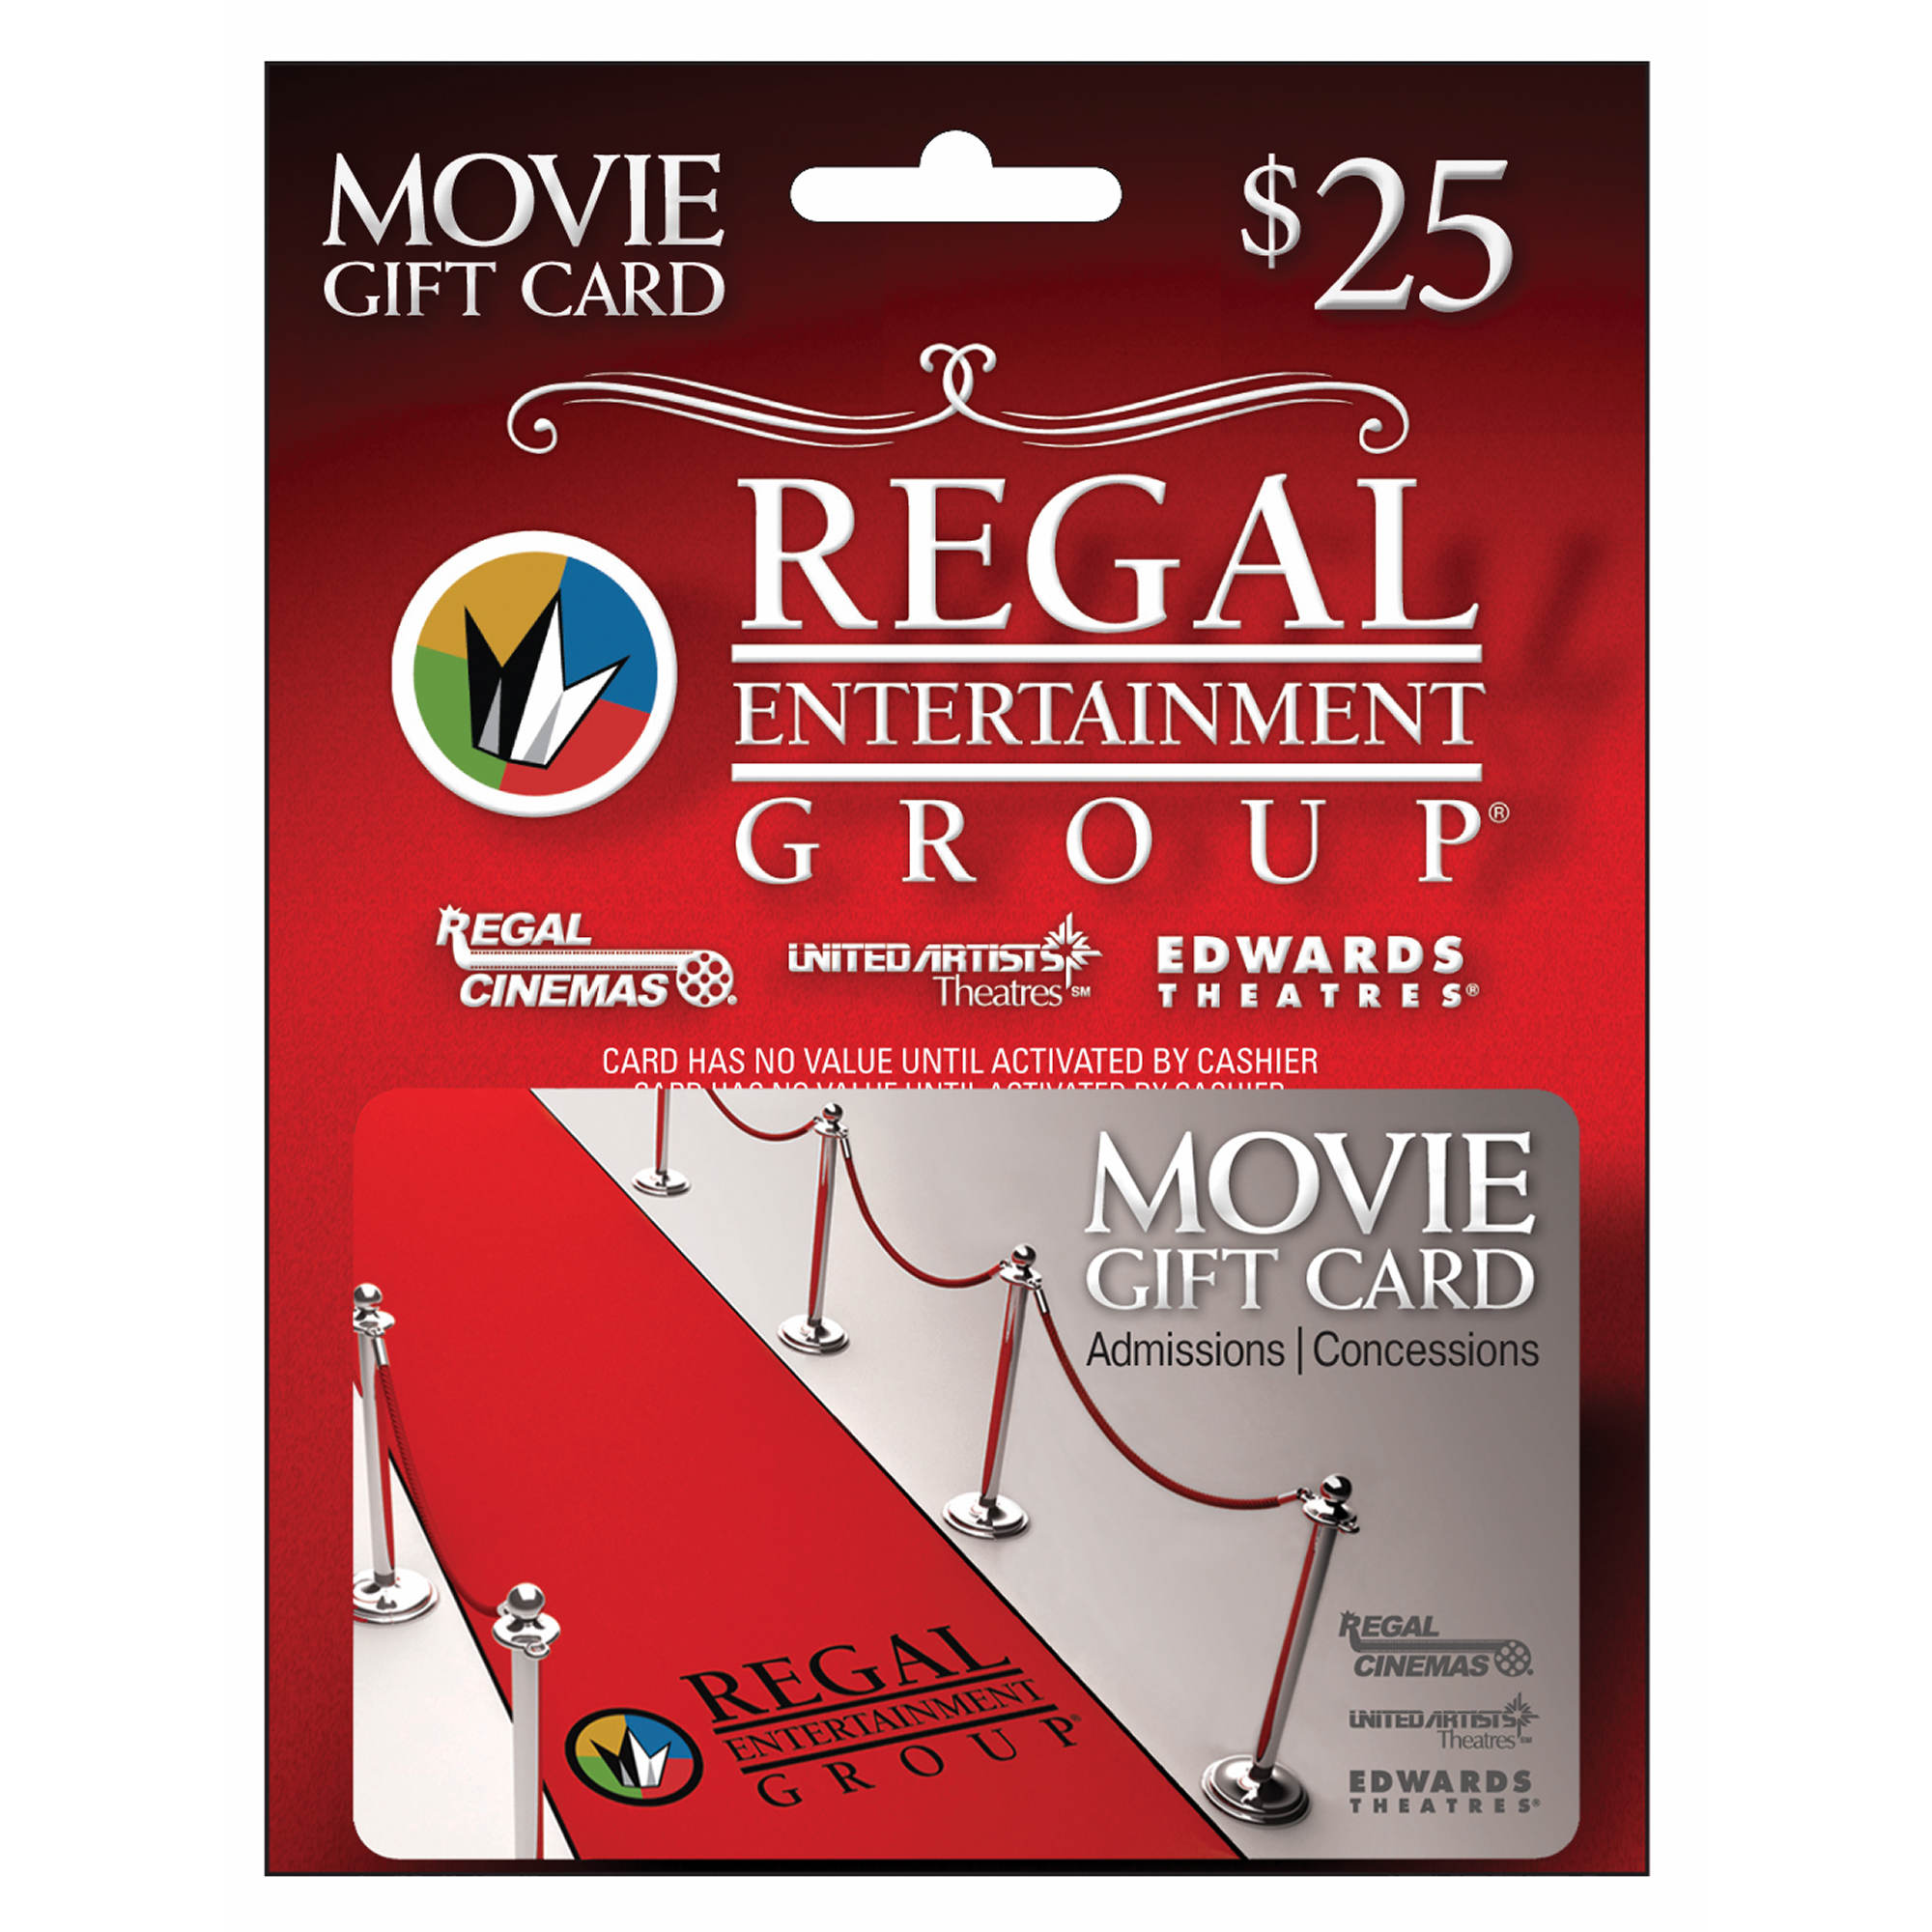 Contains 2 plastic gift cards in your choice of design. Two great gifts! One great night! Regal gift cards are good towards admissions and concessions.